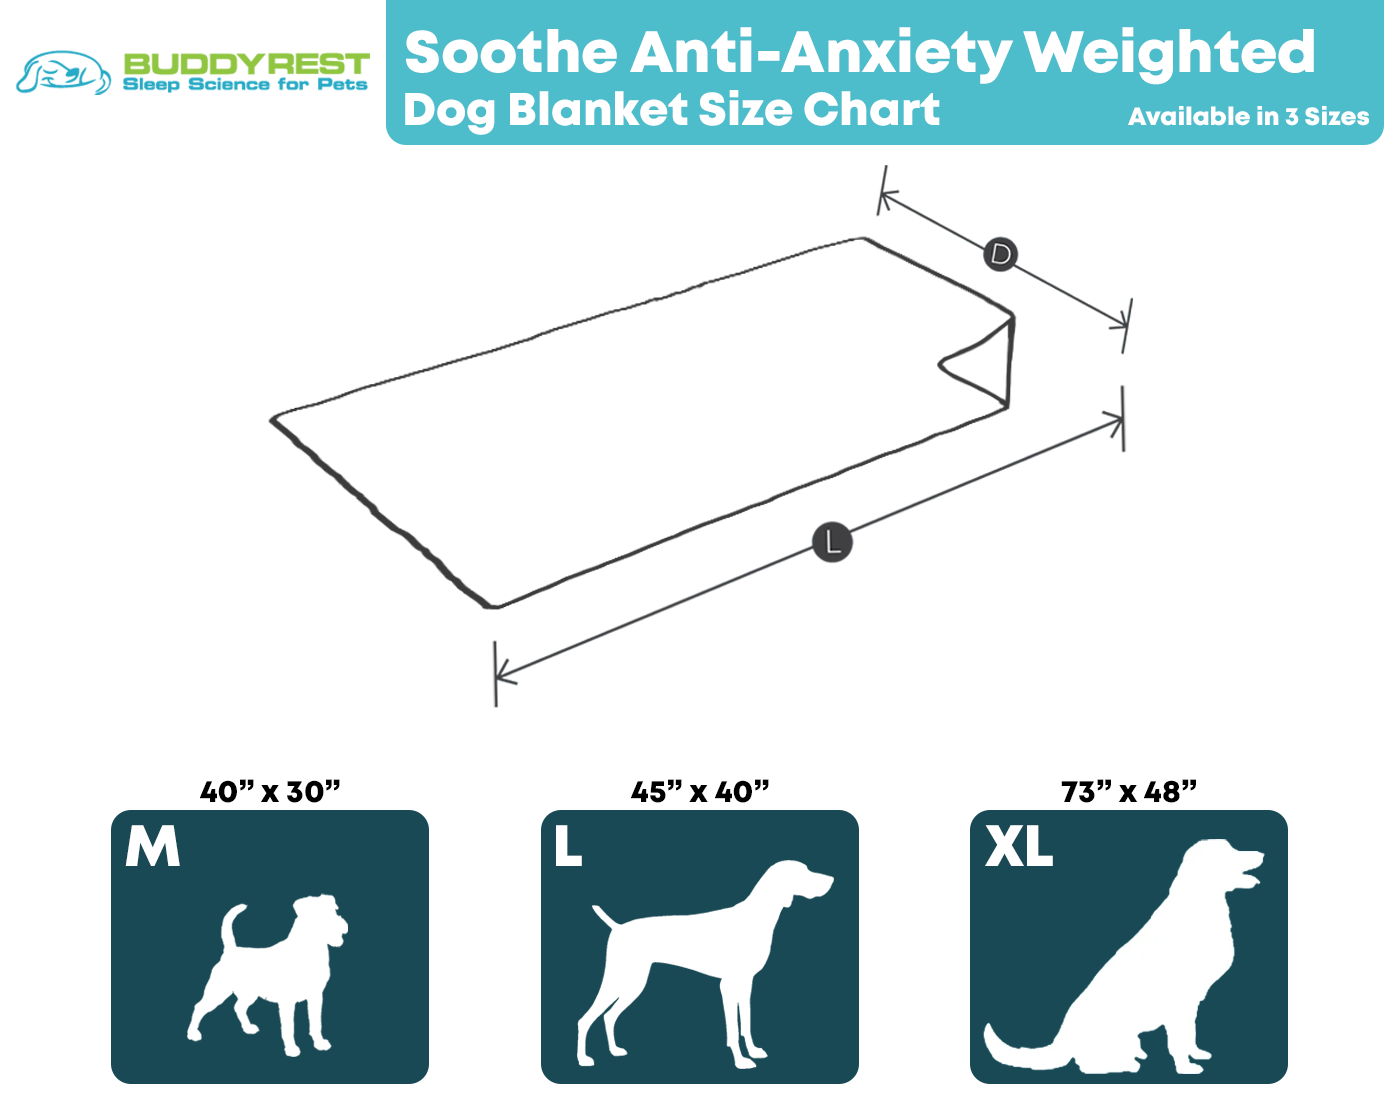 Soothe Weighted Dog Blanket